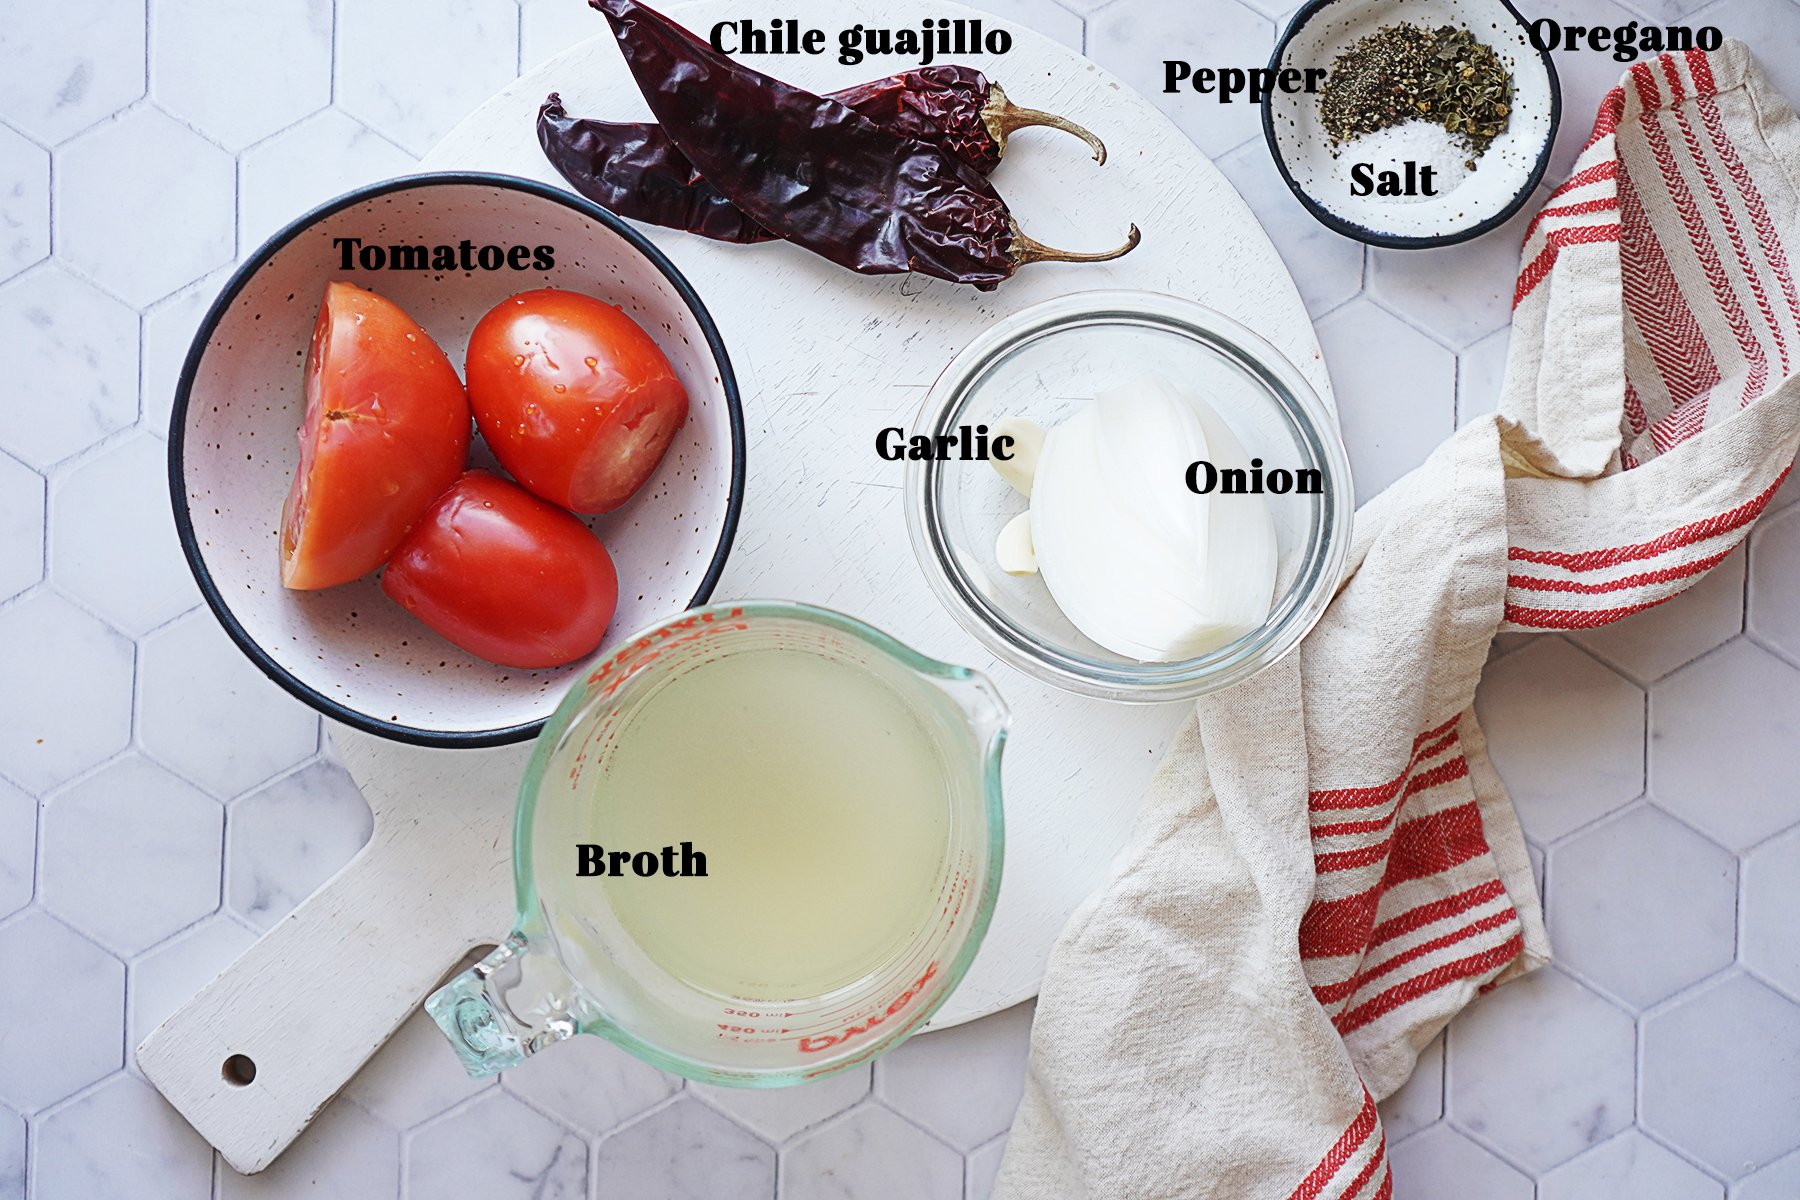 Ingredients on a white board: tomatoes, chile guajillo, garlic, onions, broth, and spices.